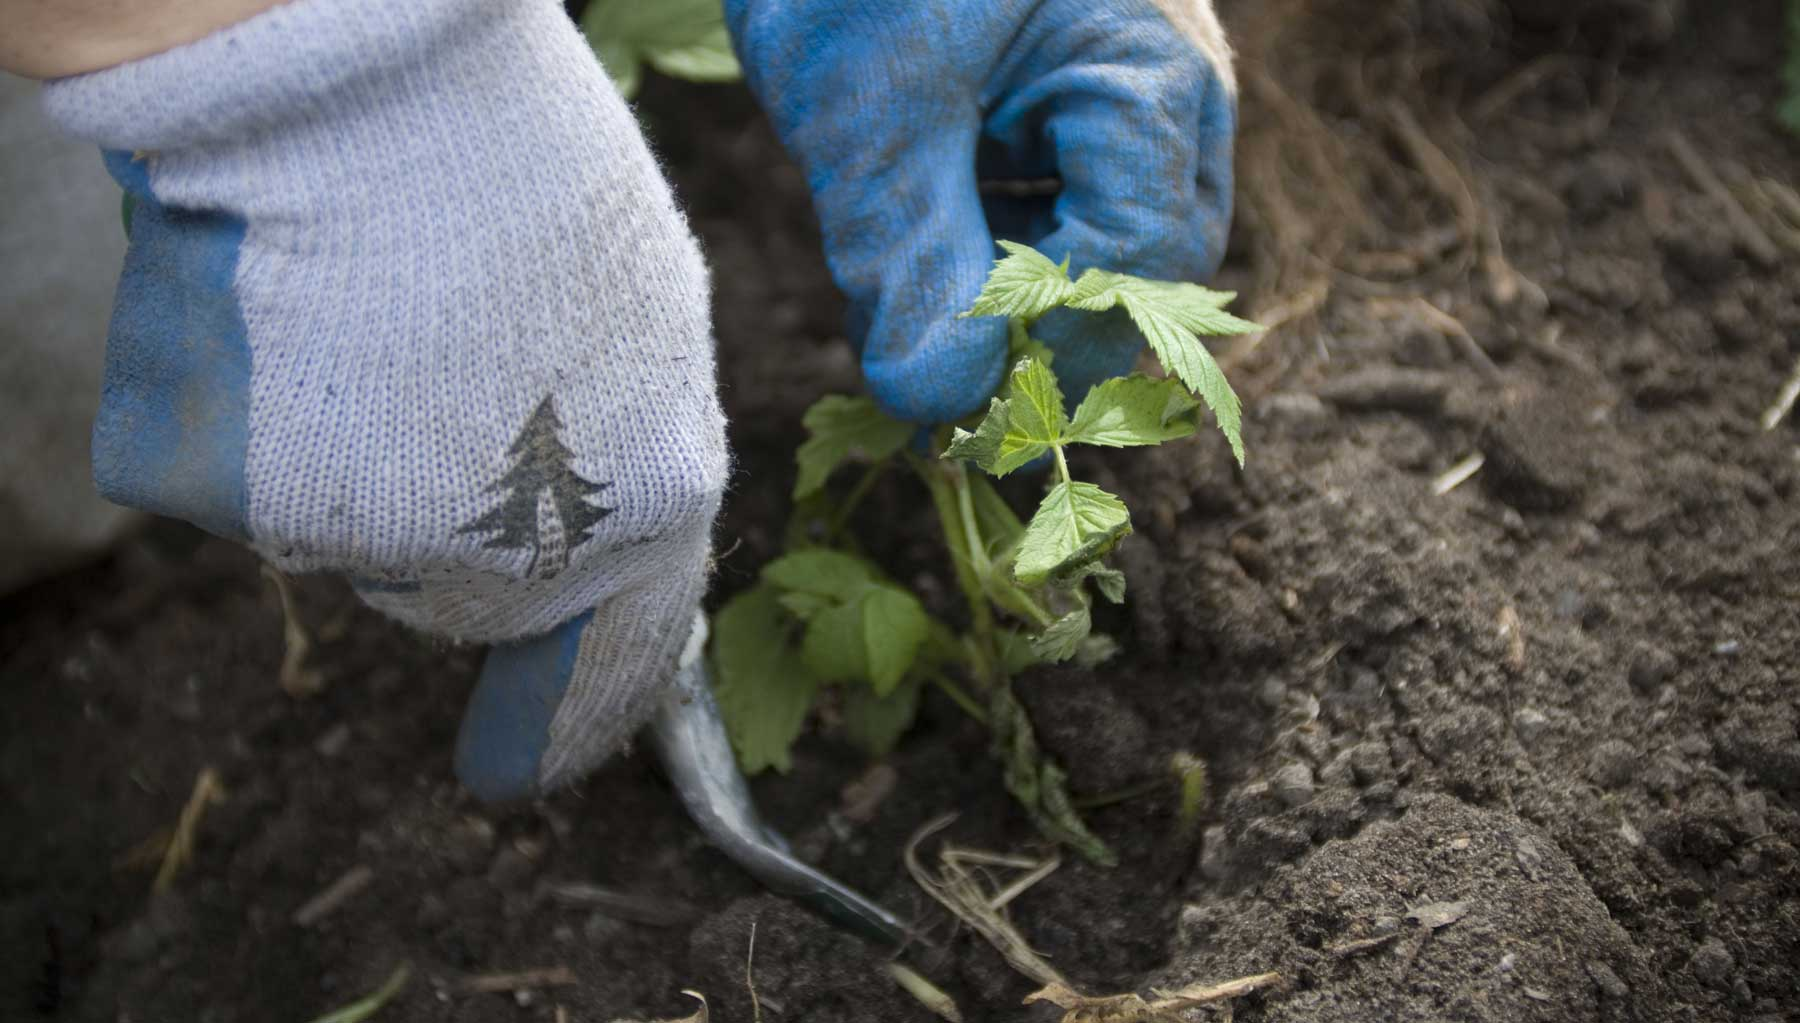 A volunteer wearing Evergreen branded gloves planting a native plant in the ground.